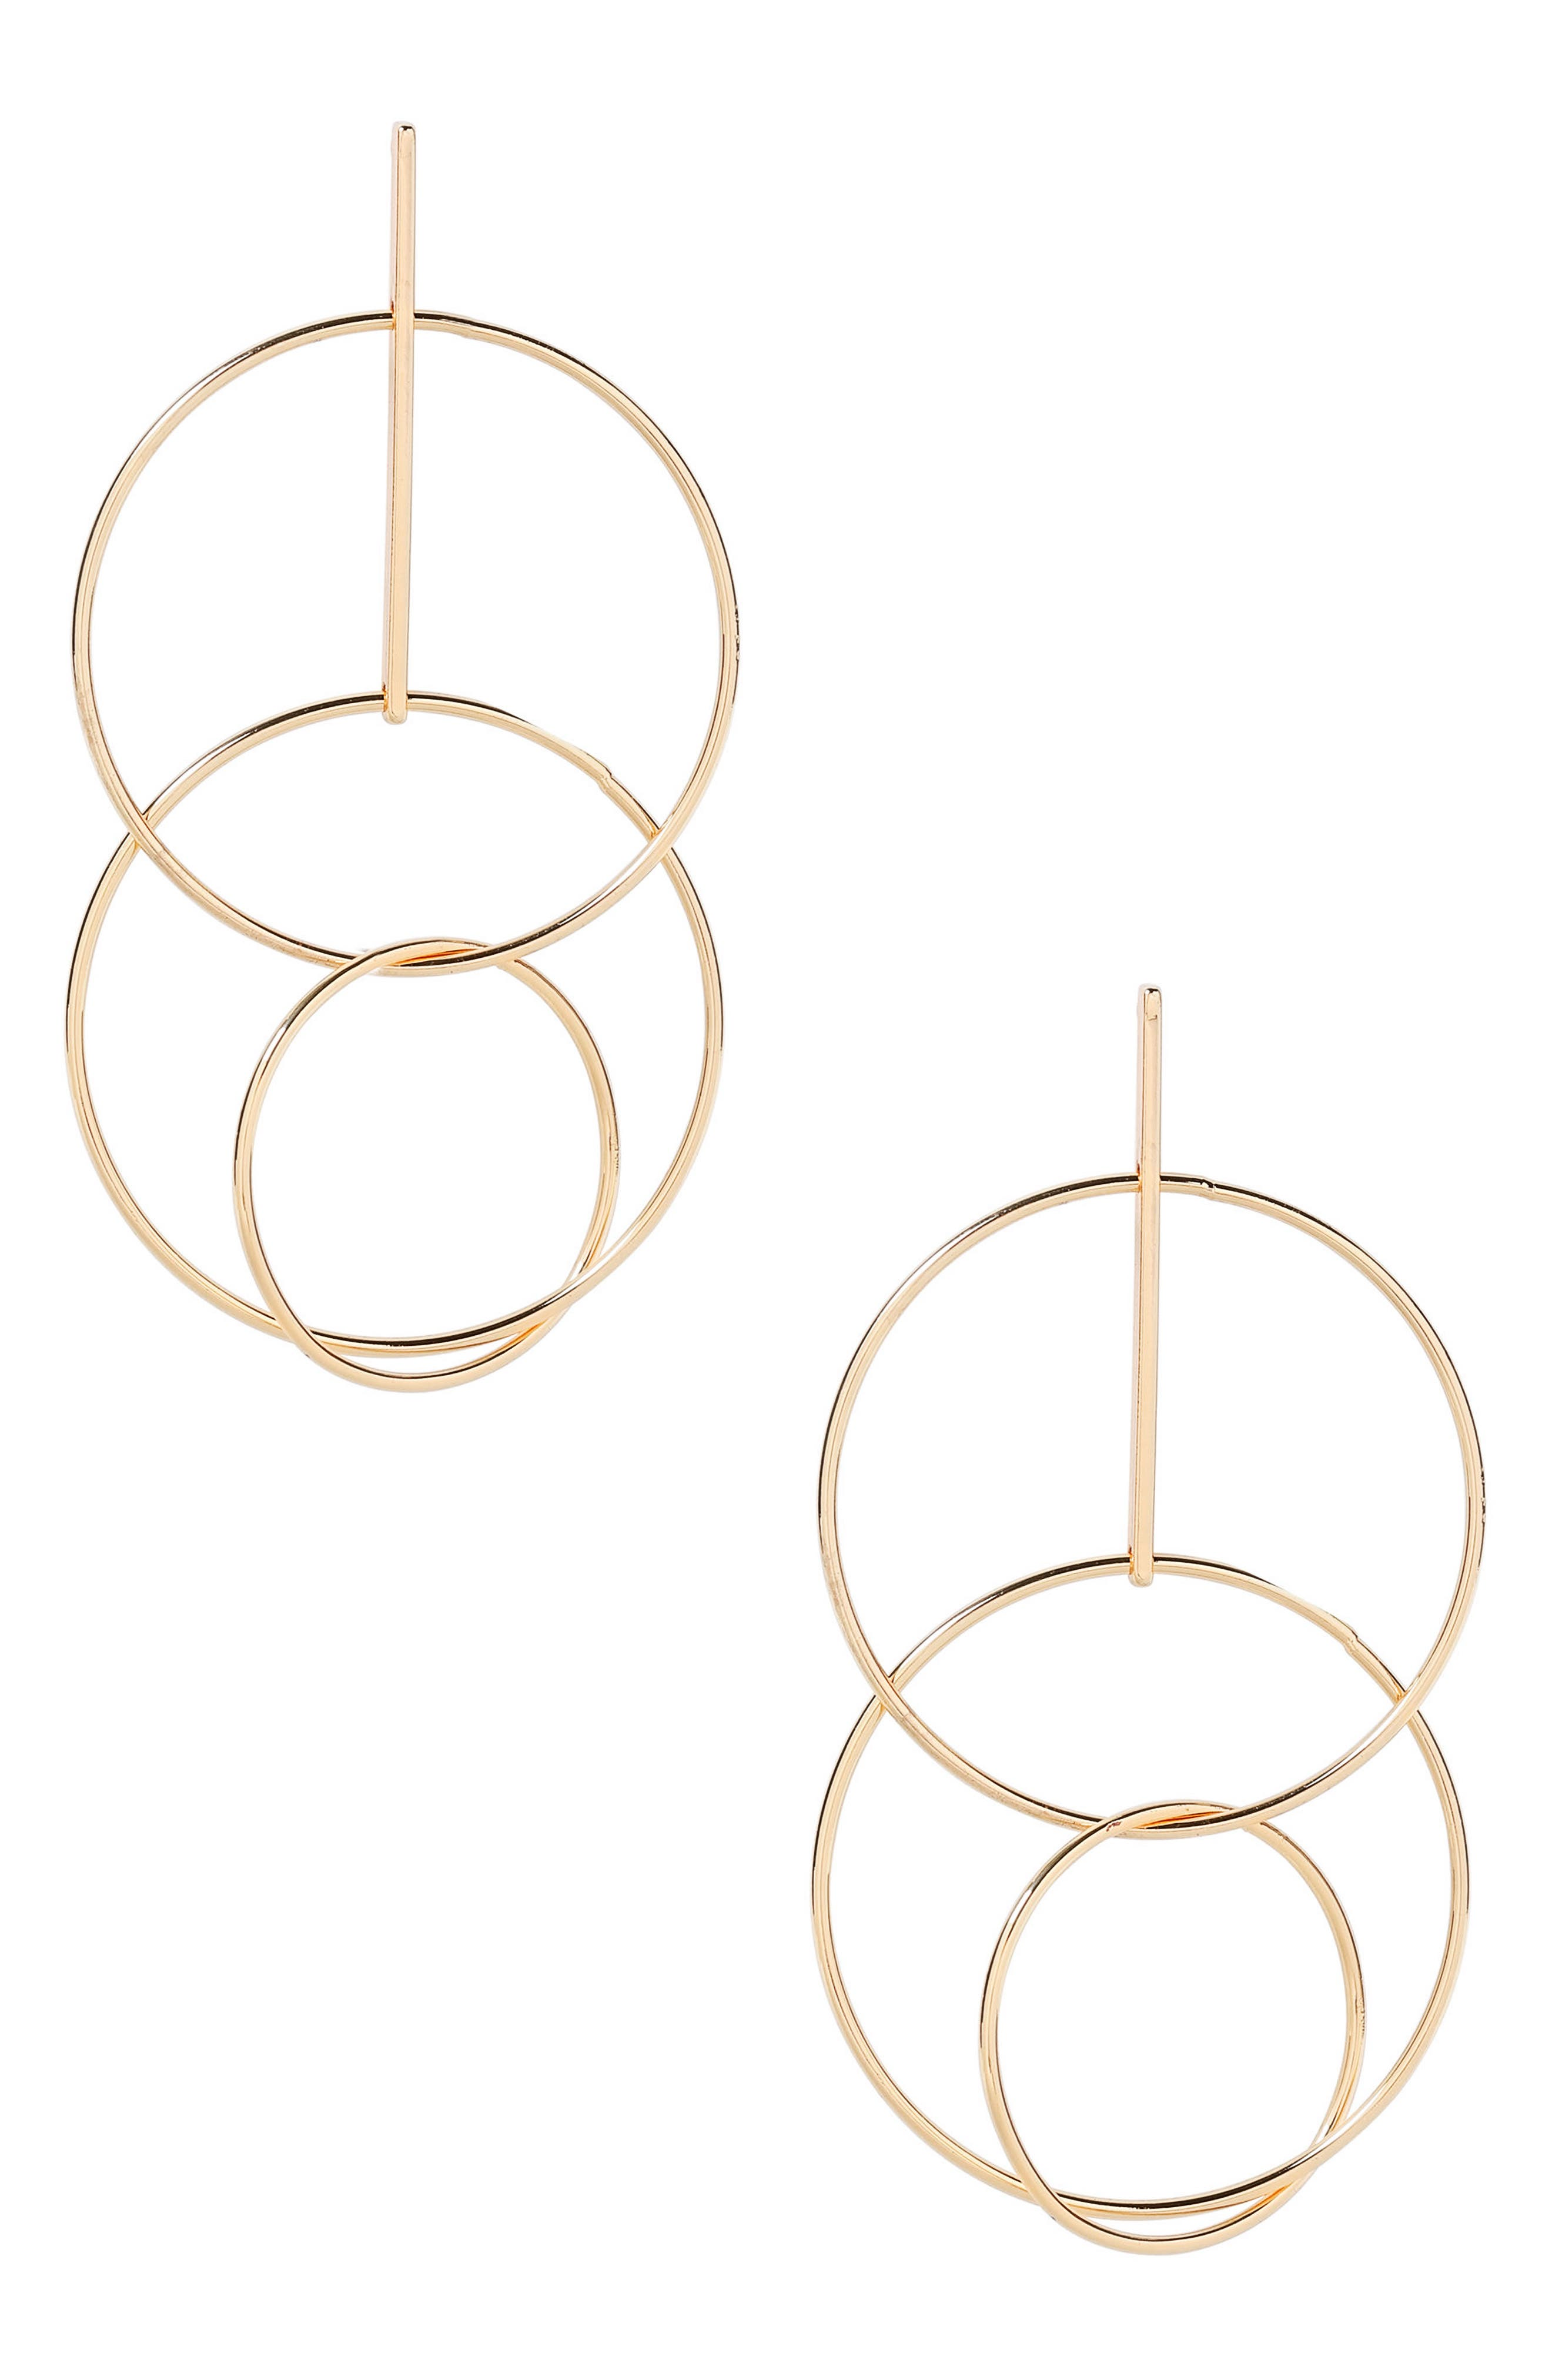 Circle Statement Earrings,                             Main thumbnail 1, color,                             710